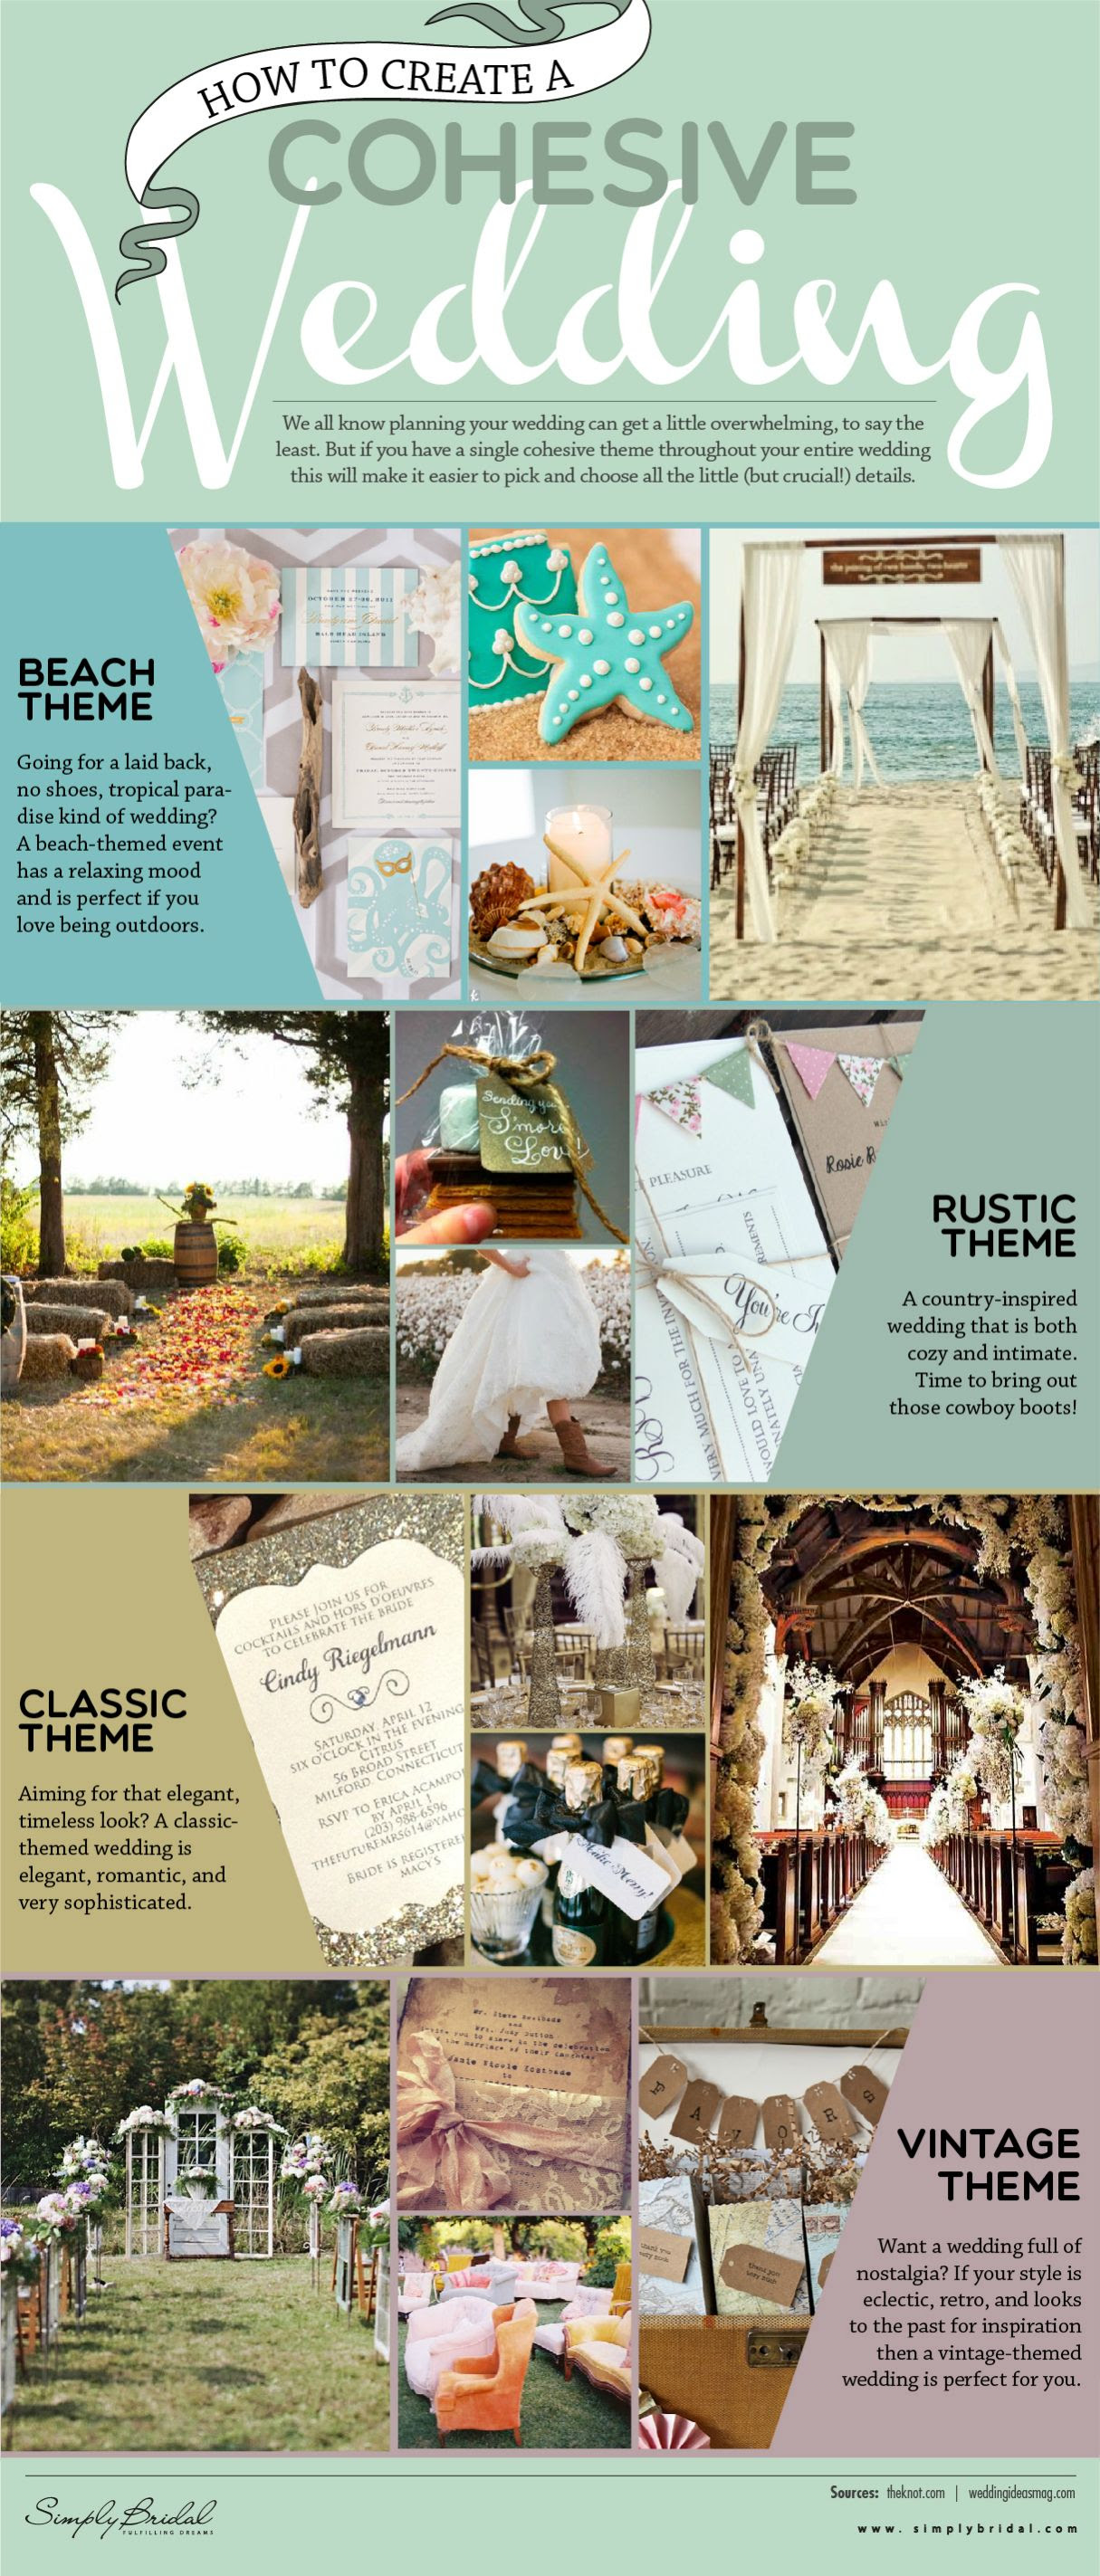 Infographic: How To Create Cohesive Wedding #infographic